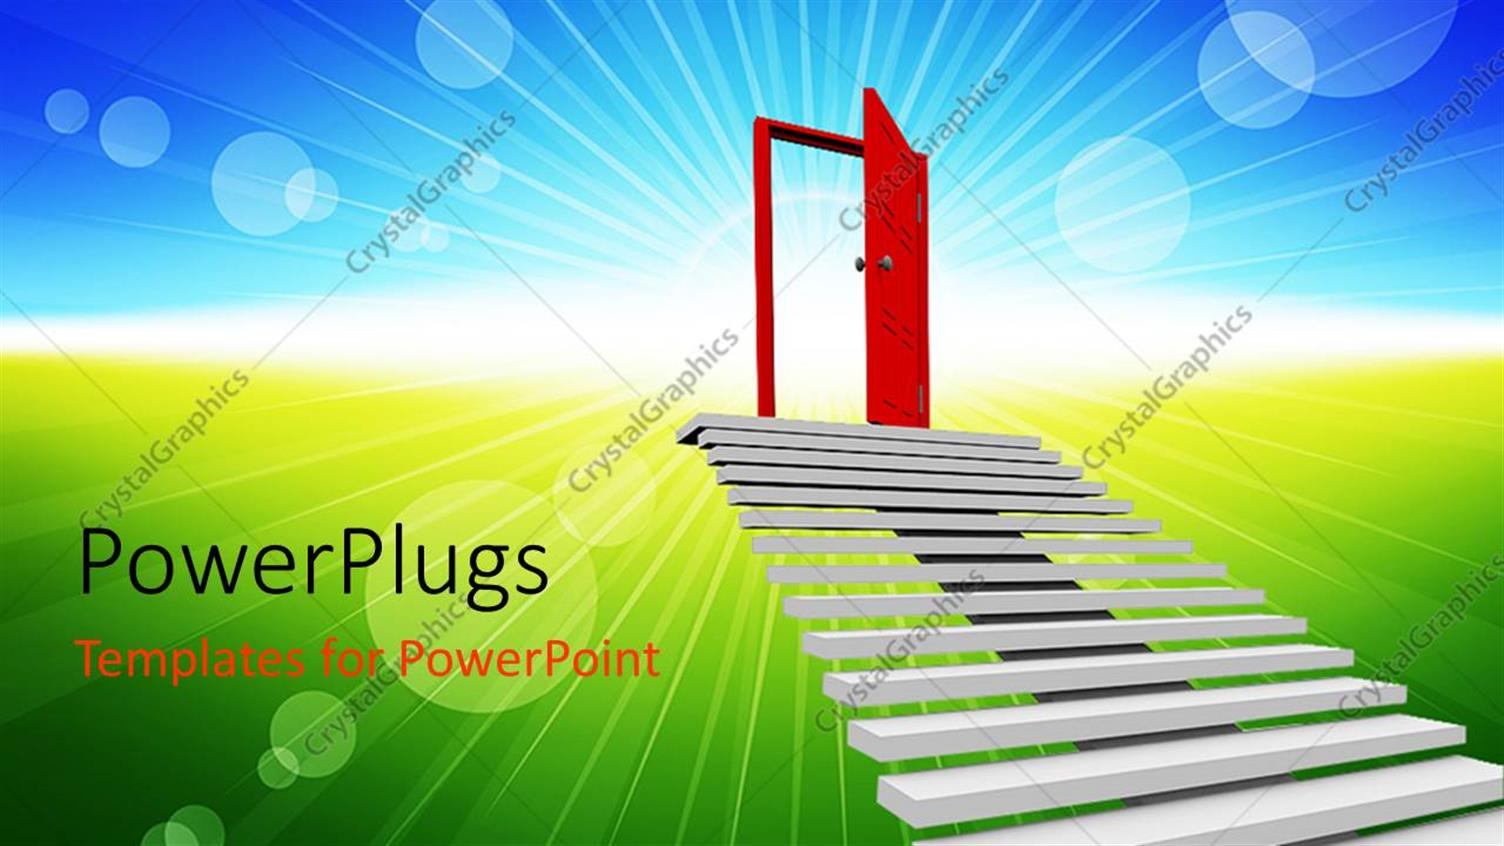 PowerPoint Template Displaying Animation of a Flight of Stairs Leading to a Red Door